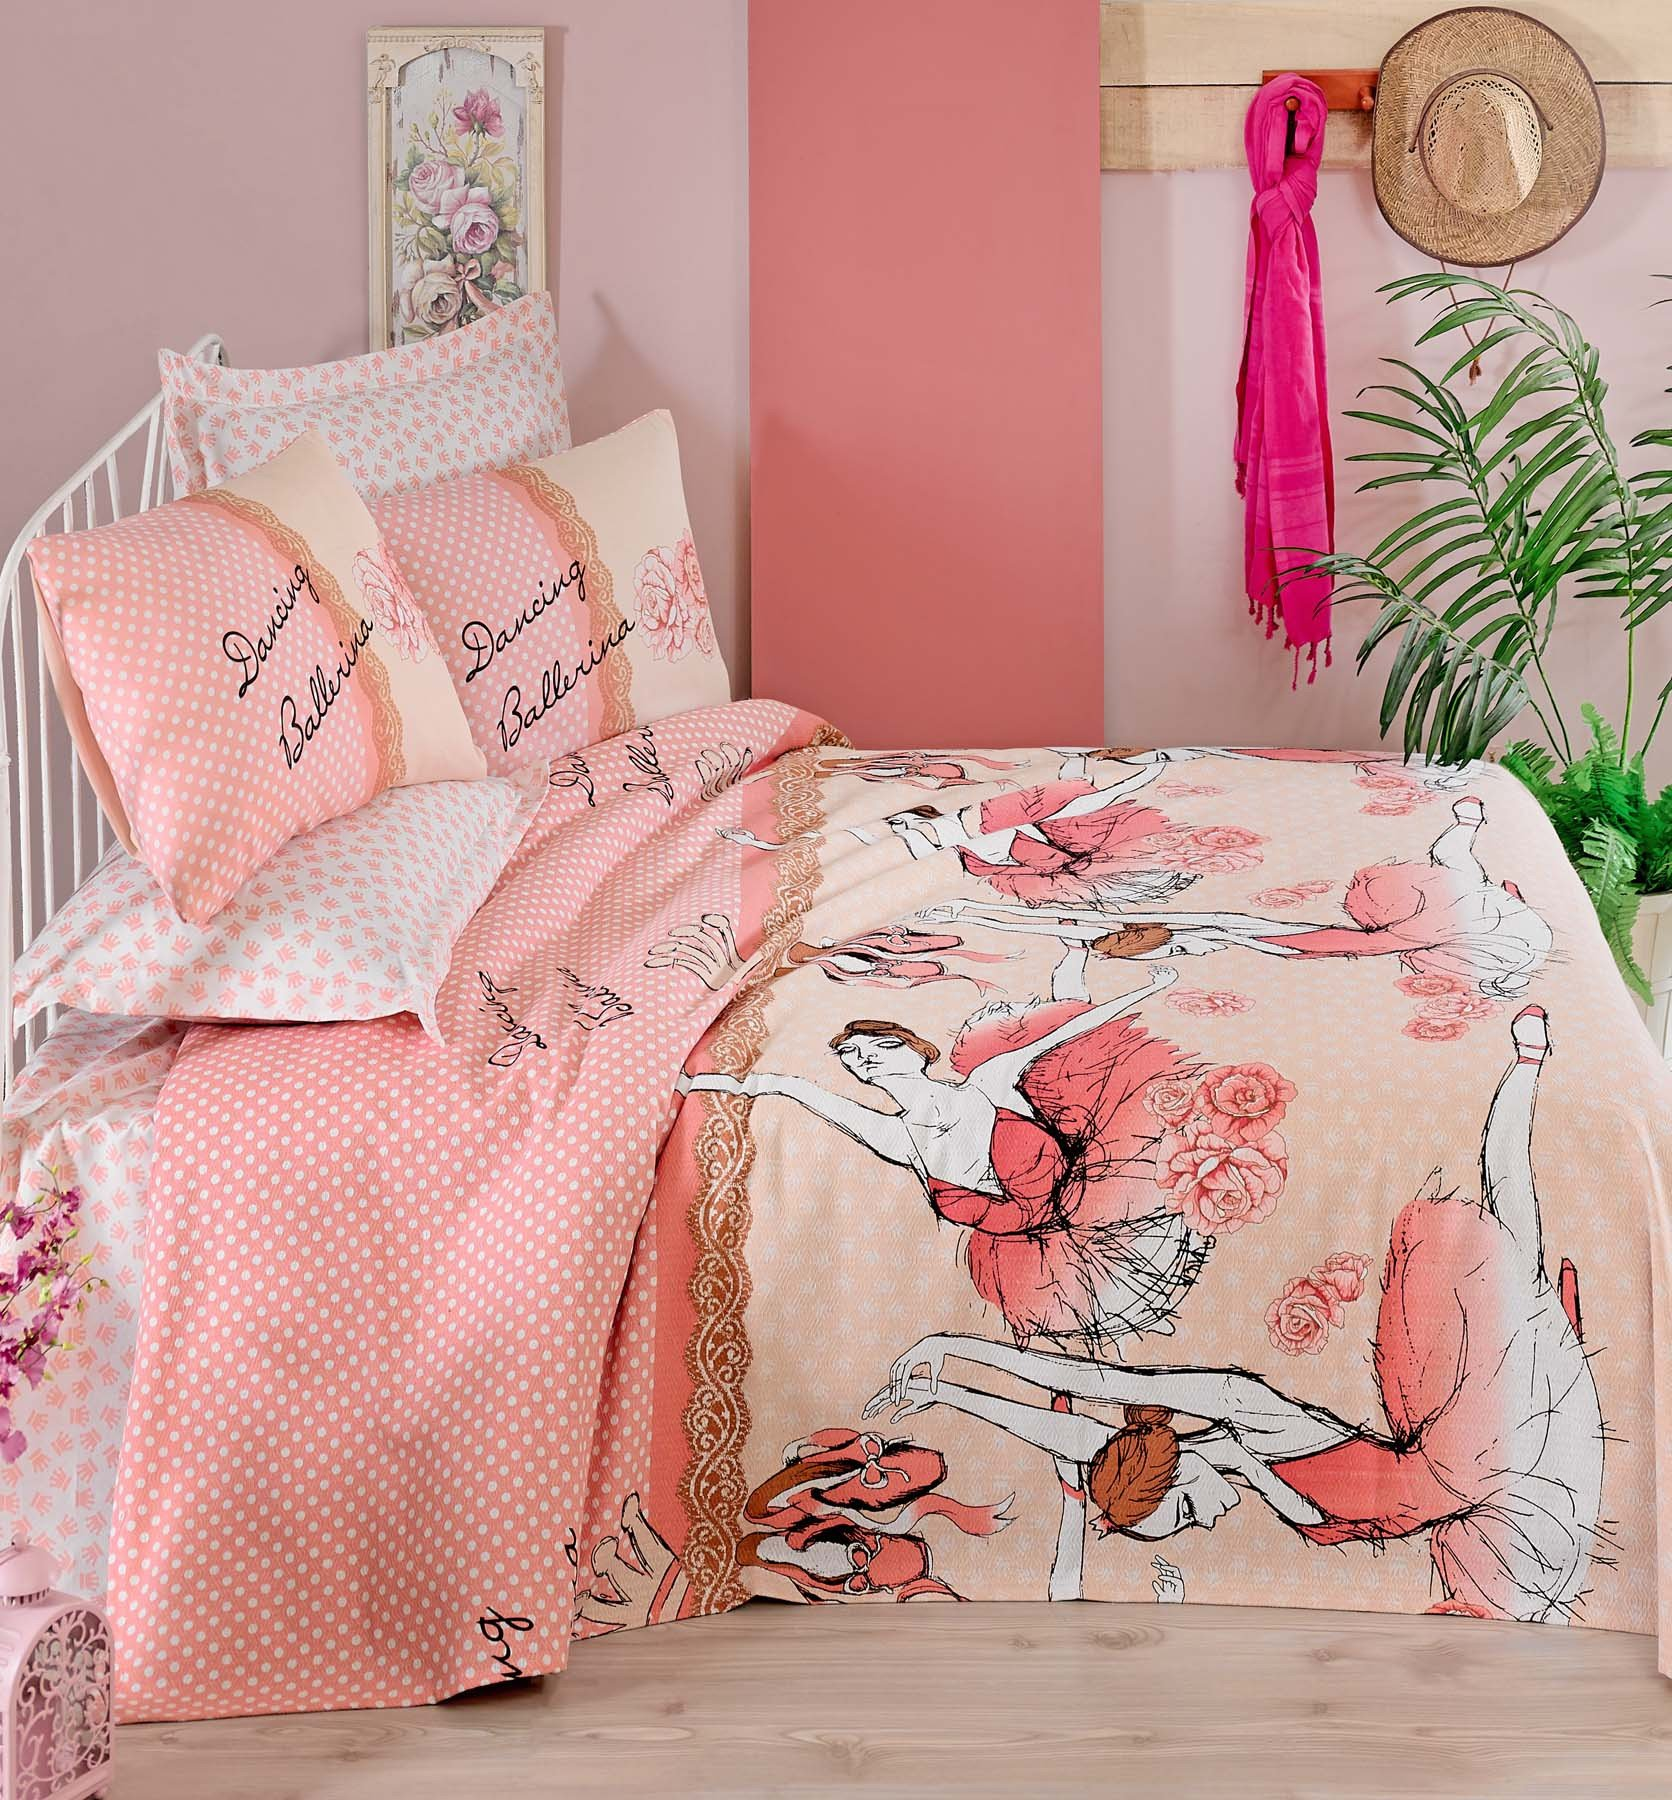 LaModaHome Dance Coverlet Set, 100% Cotton - Ballerina is Dancing Like a Swan, Pink Rose - Coverlet Size (63'' x 92.5'') - 4 Pieces - Coverlet, Flat Sheet and Two Pillowcases for Full Bed